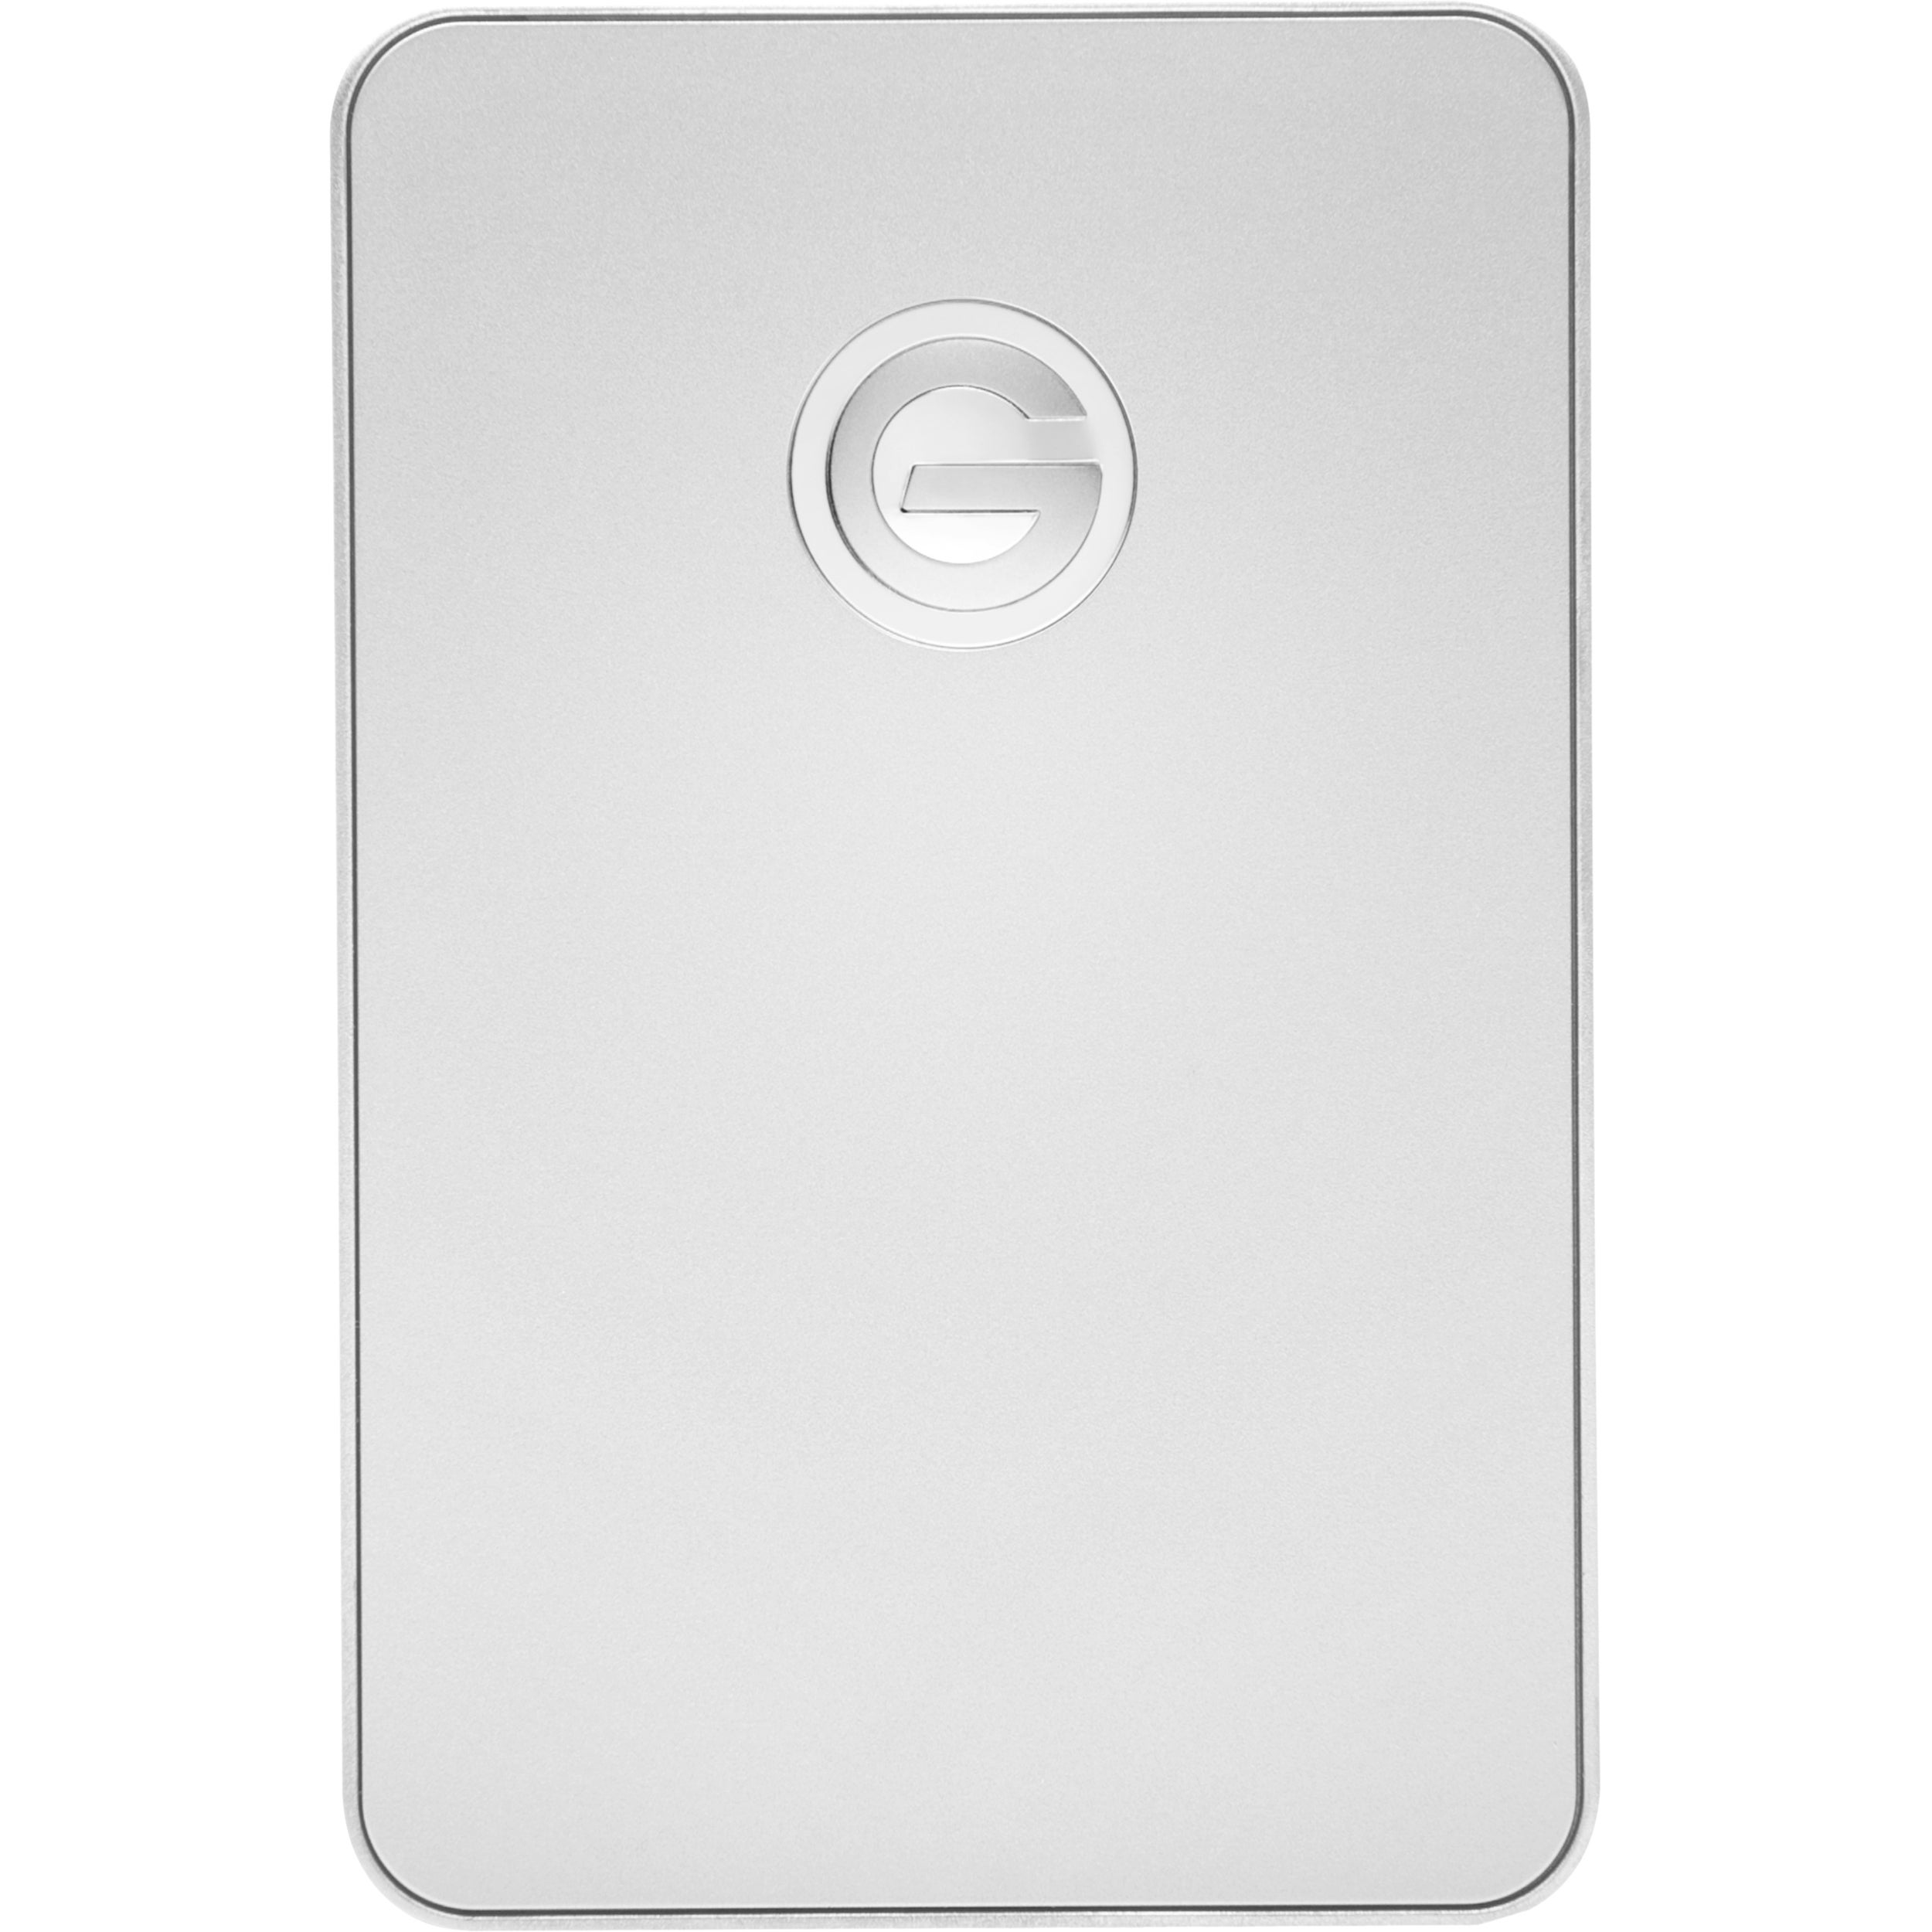 "G-Technology G-DRIVE mobile GDMOCPA10001ADB 1 TB 2.5"" External Hard D"